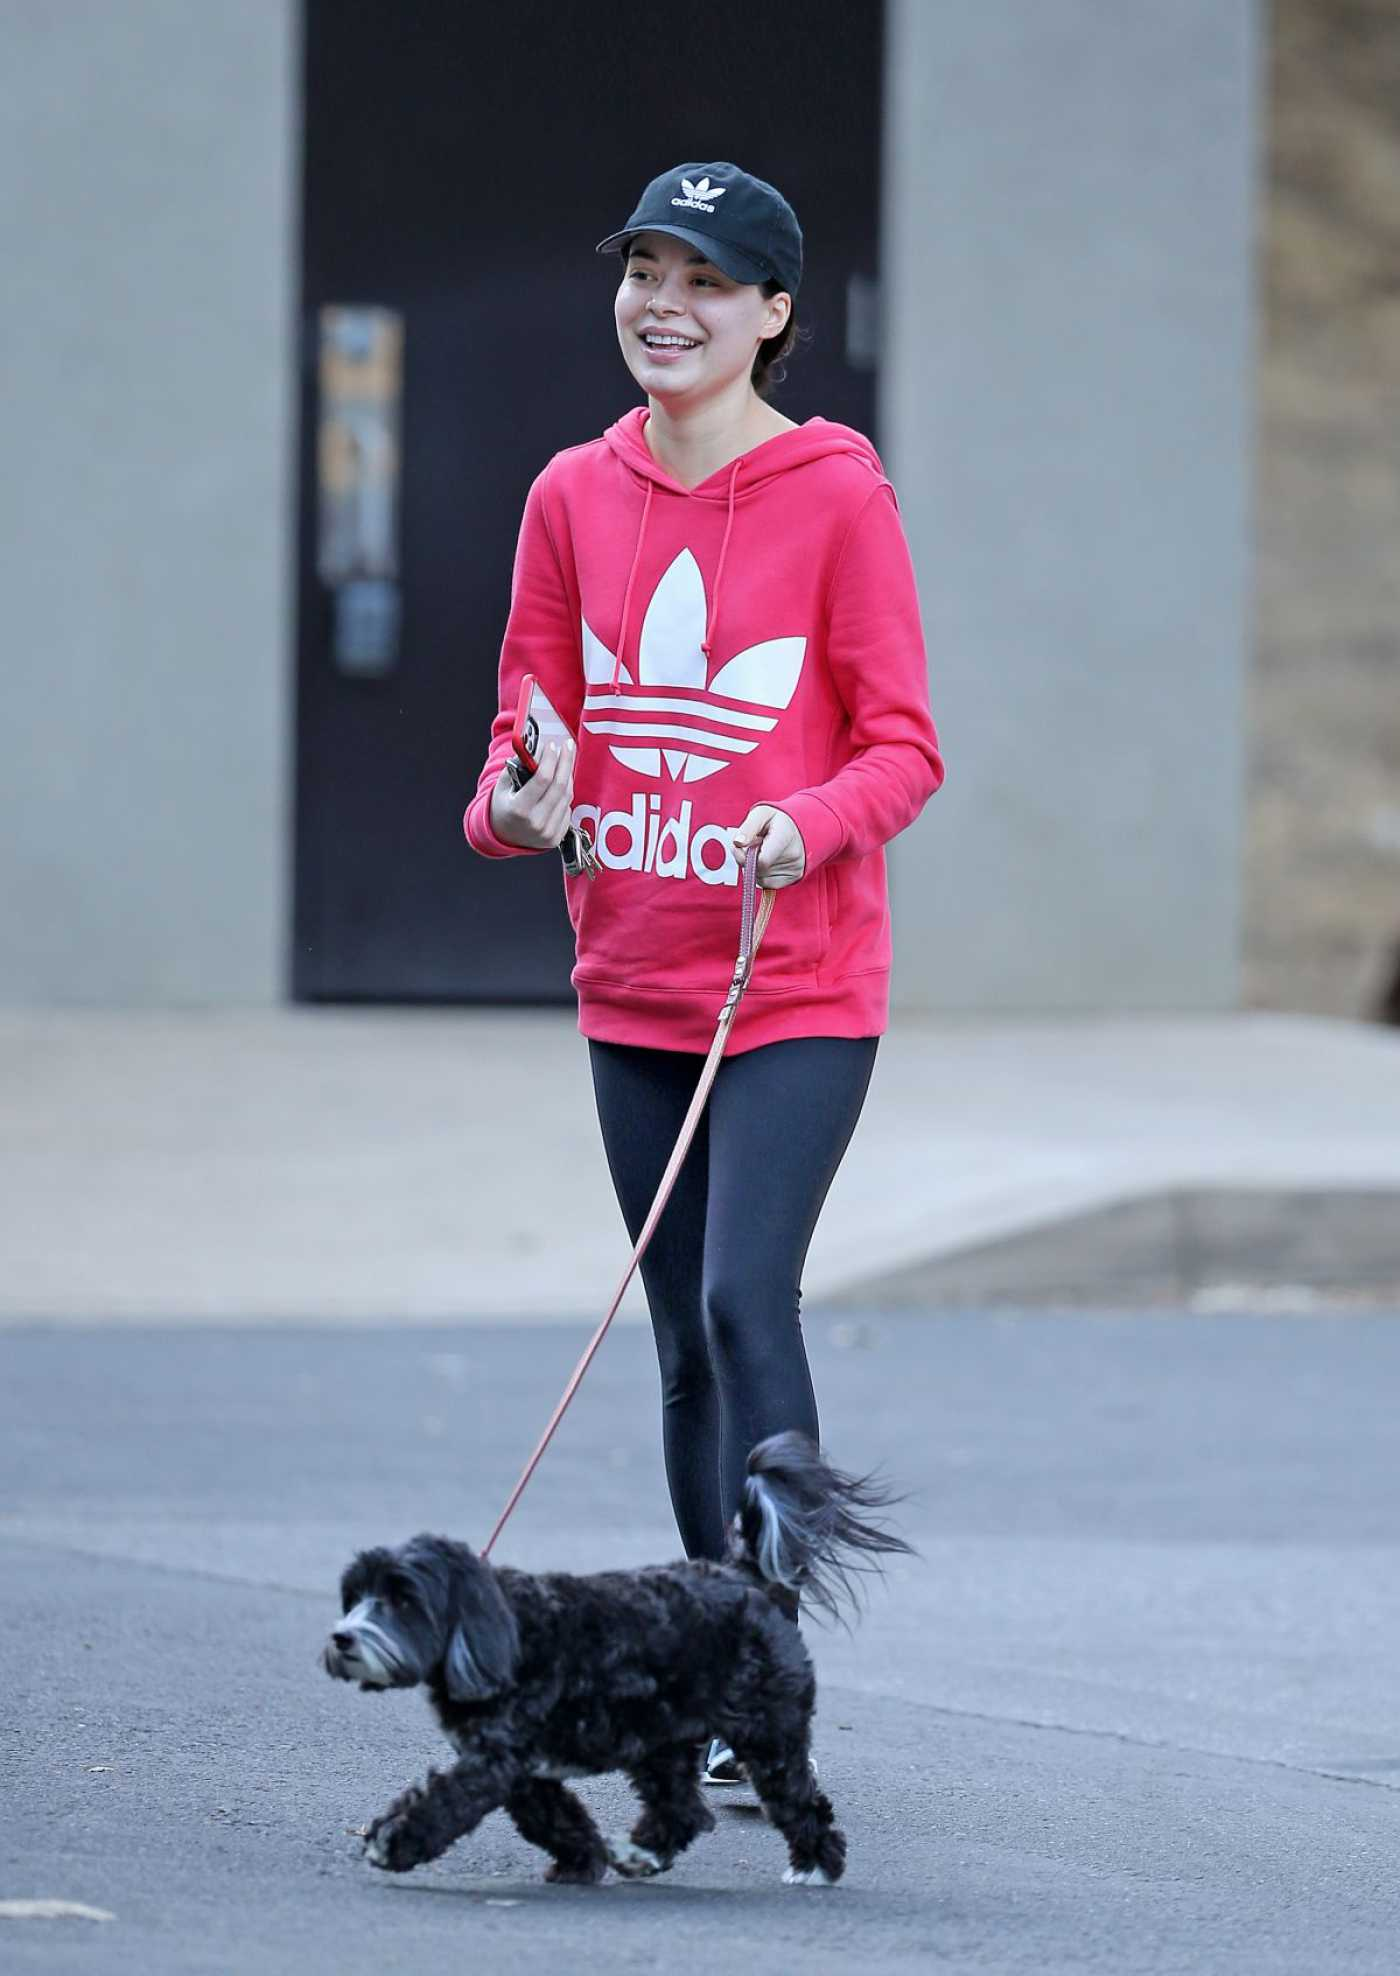 Miranda Cosgrove in a Pink Adidas Hoody Walks Her Dog Out in Los Angeles 10/06/2019